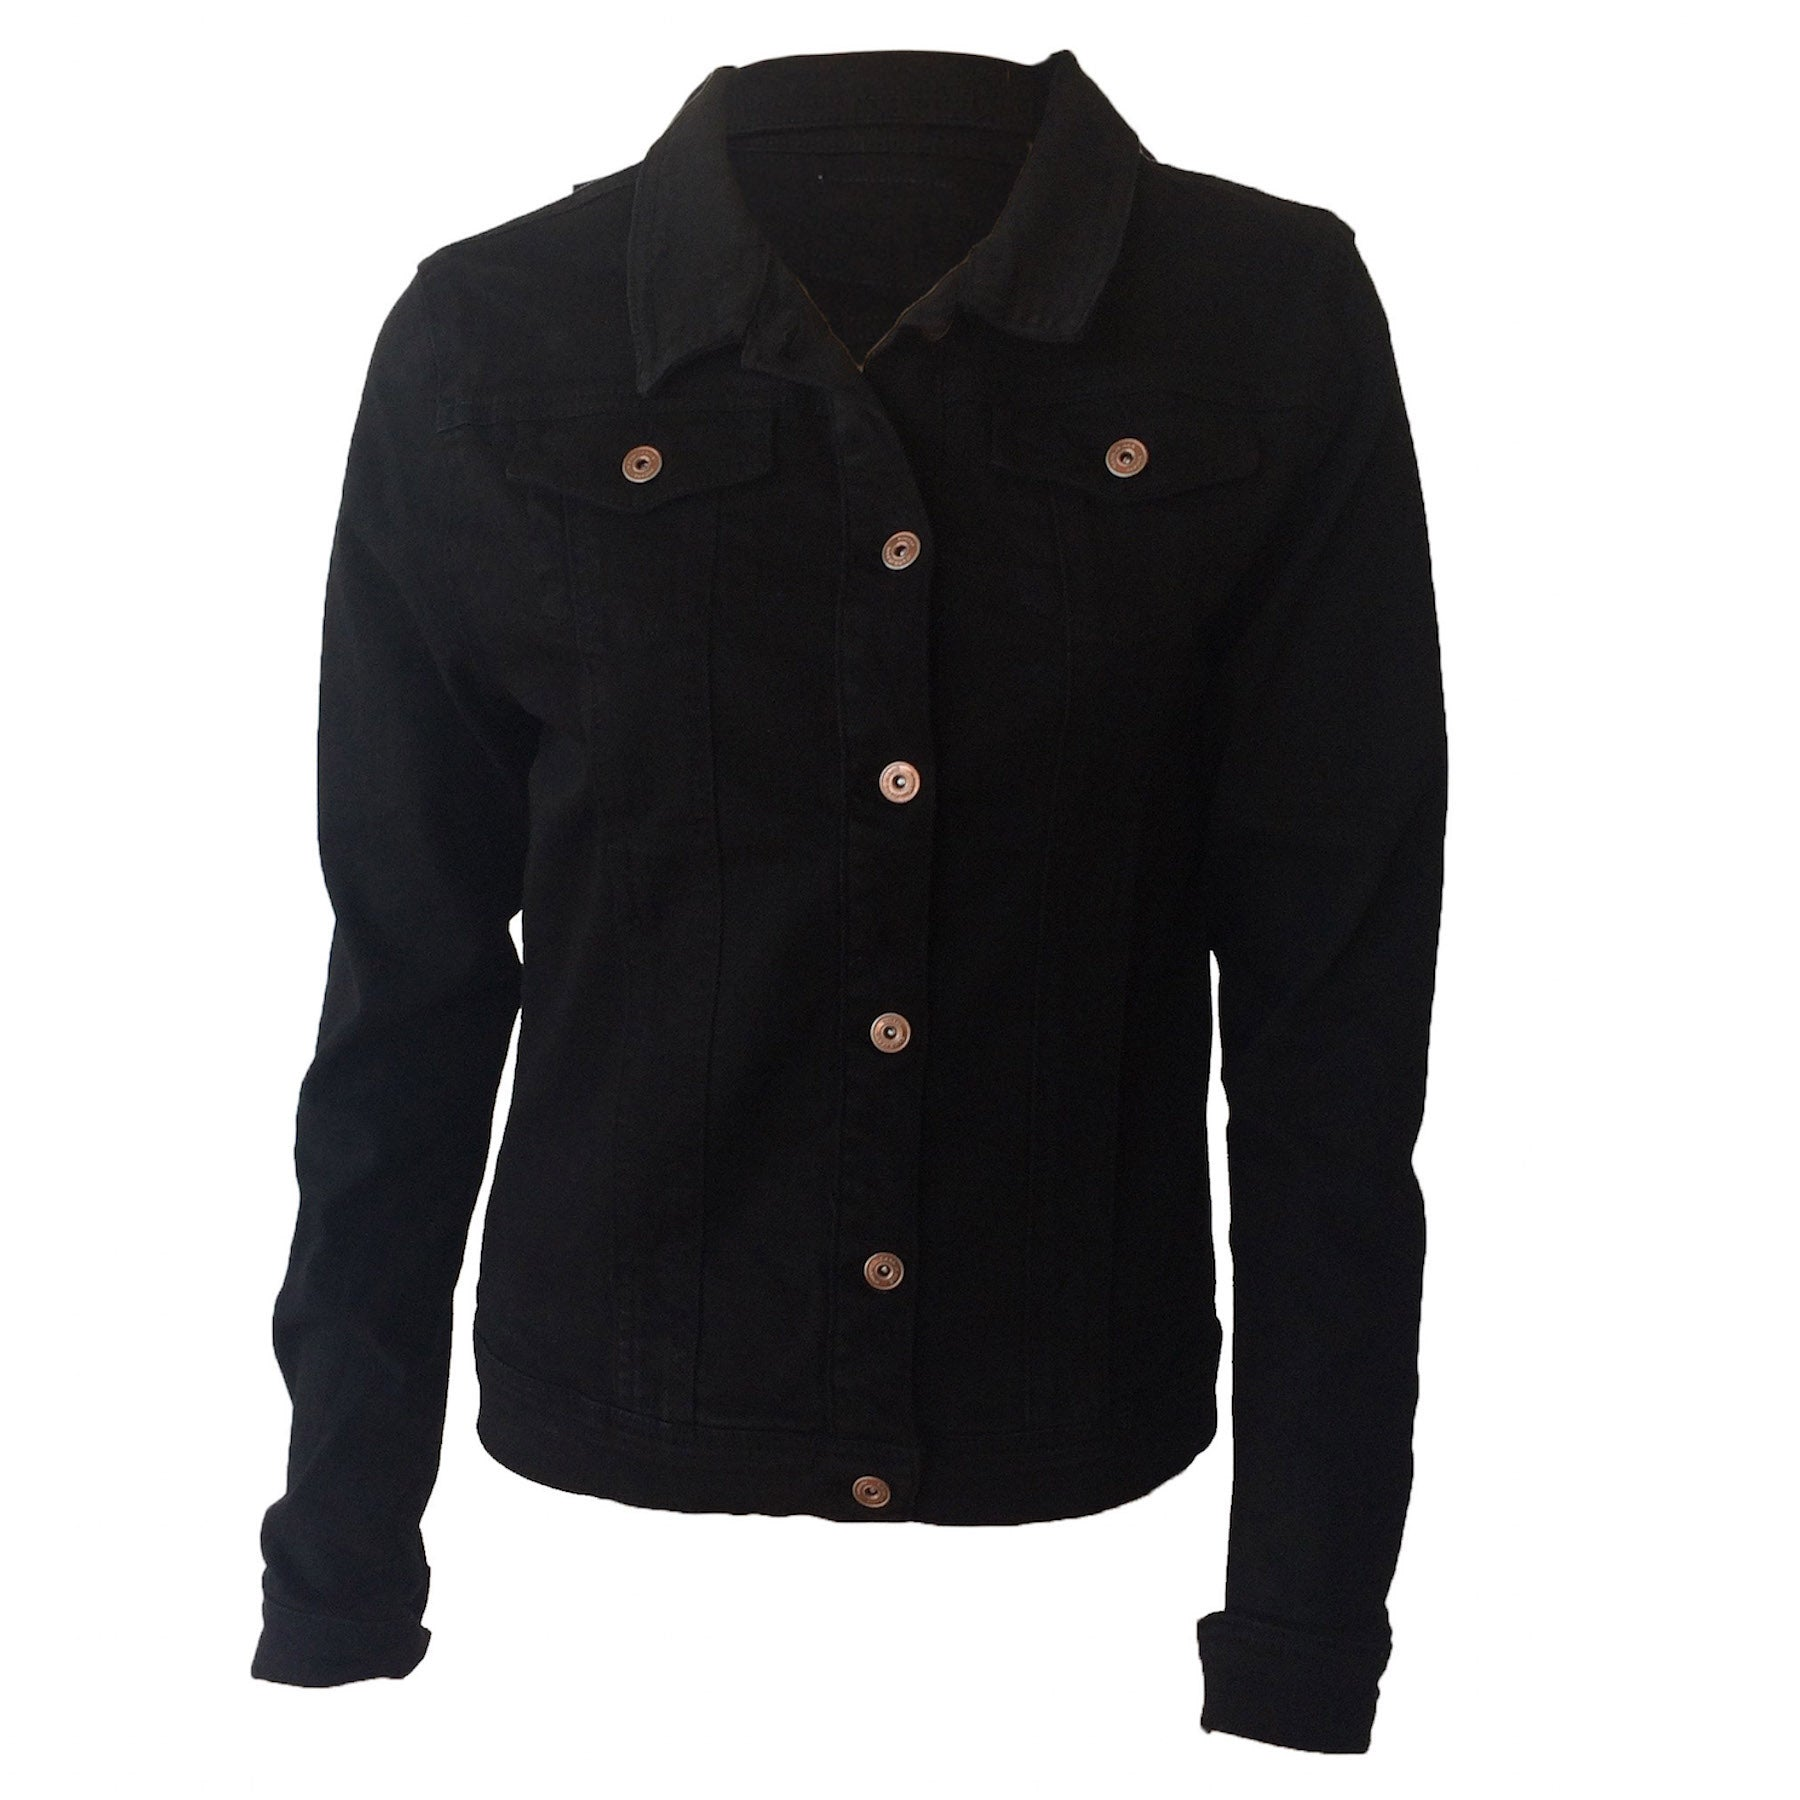 CARS Jeans from Amsterdam, is a super edgy, teen brand focusing on modern design. This black denim jacket is a classic with good stretch and a nice cropped length.